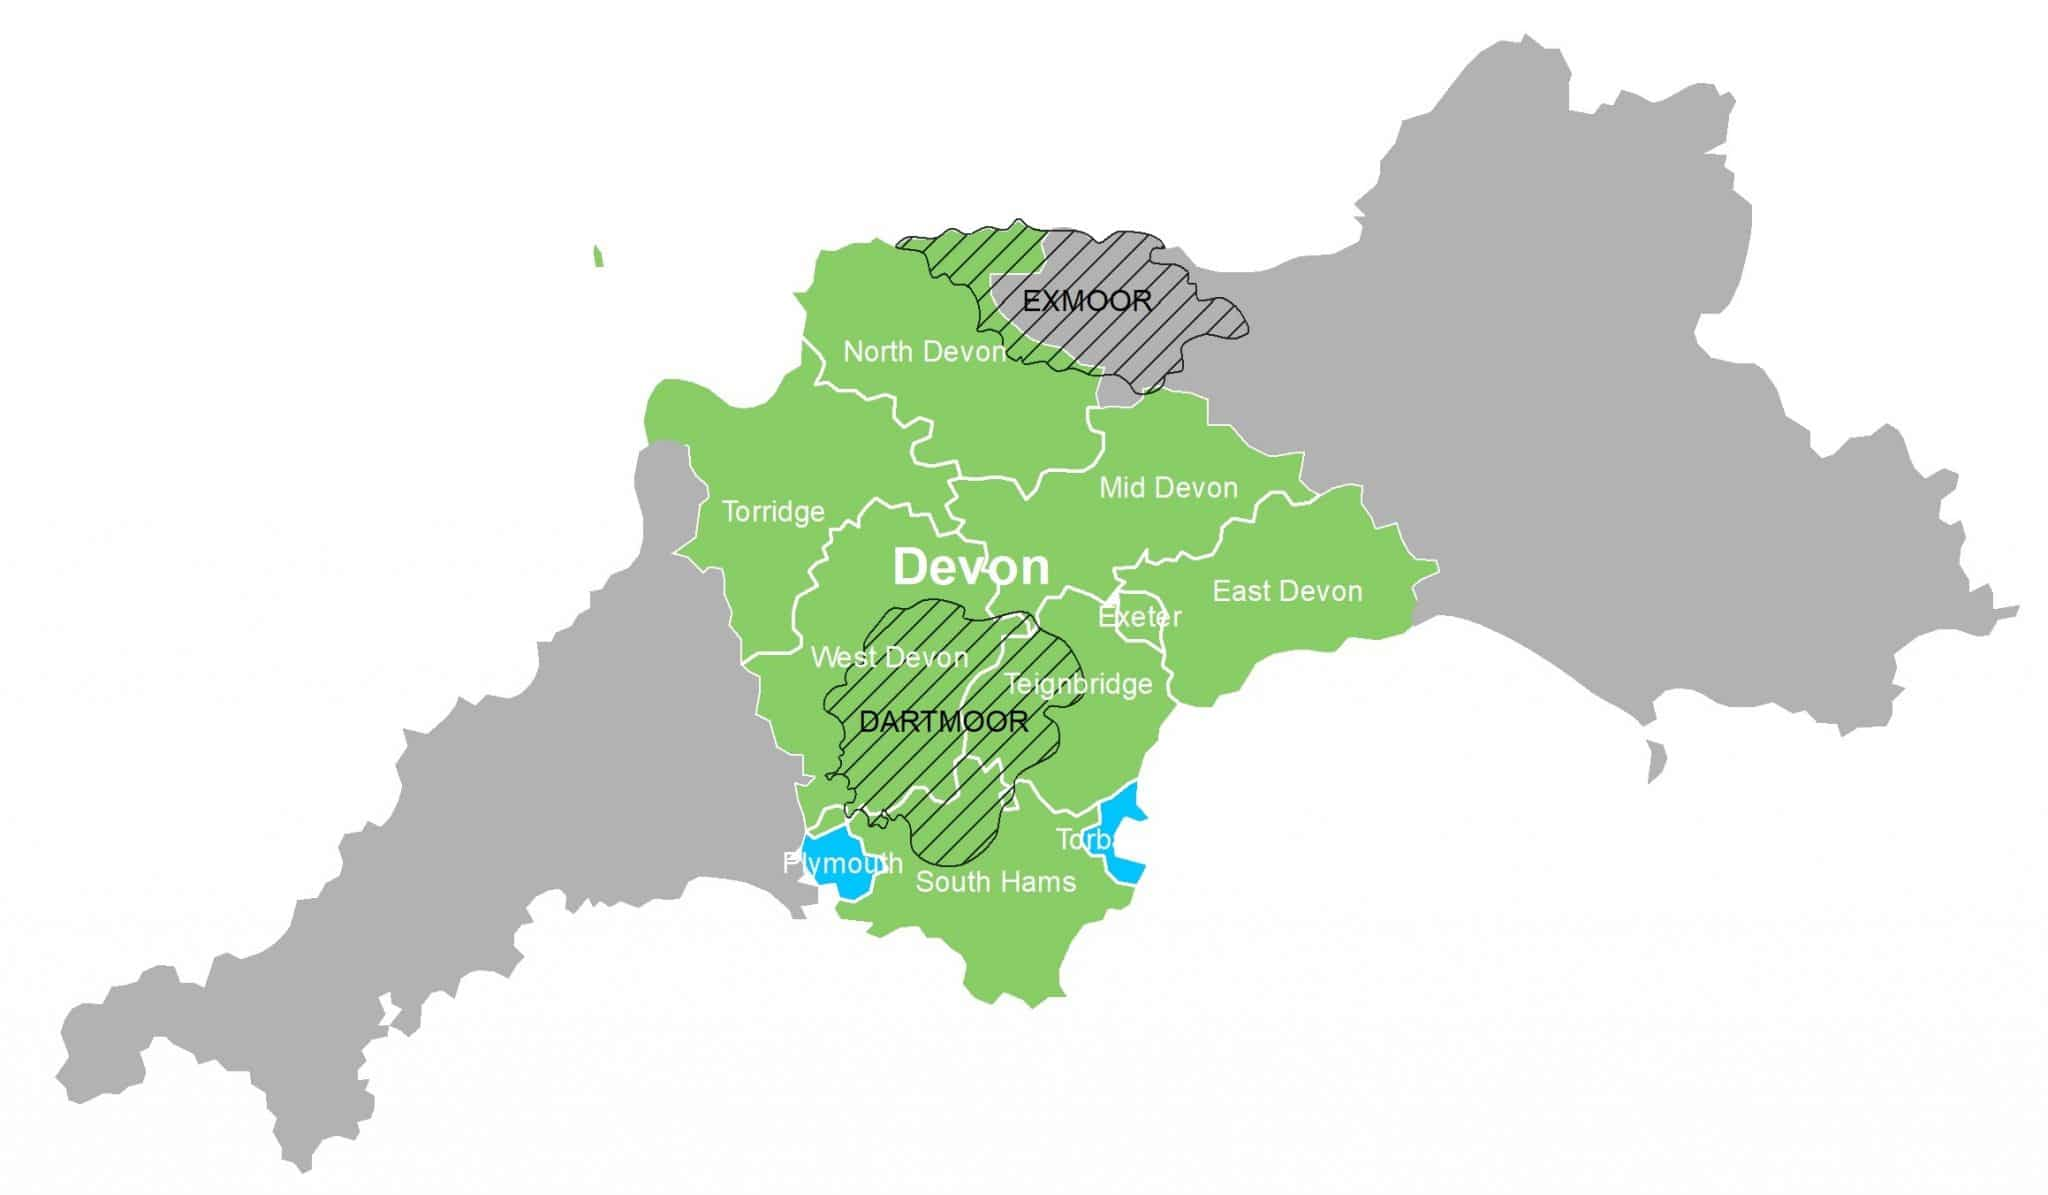 Outline map of devon areas including North, Torridge, Mid Devon, West Devon, East Devon, Exeter, West devon, Teignbridge, South Hams, Dartmoor and Exmoor